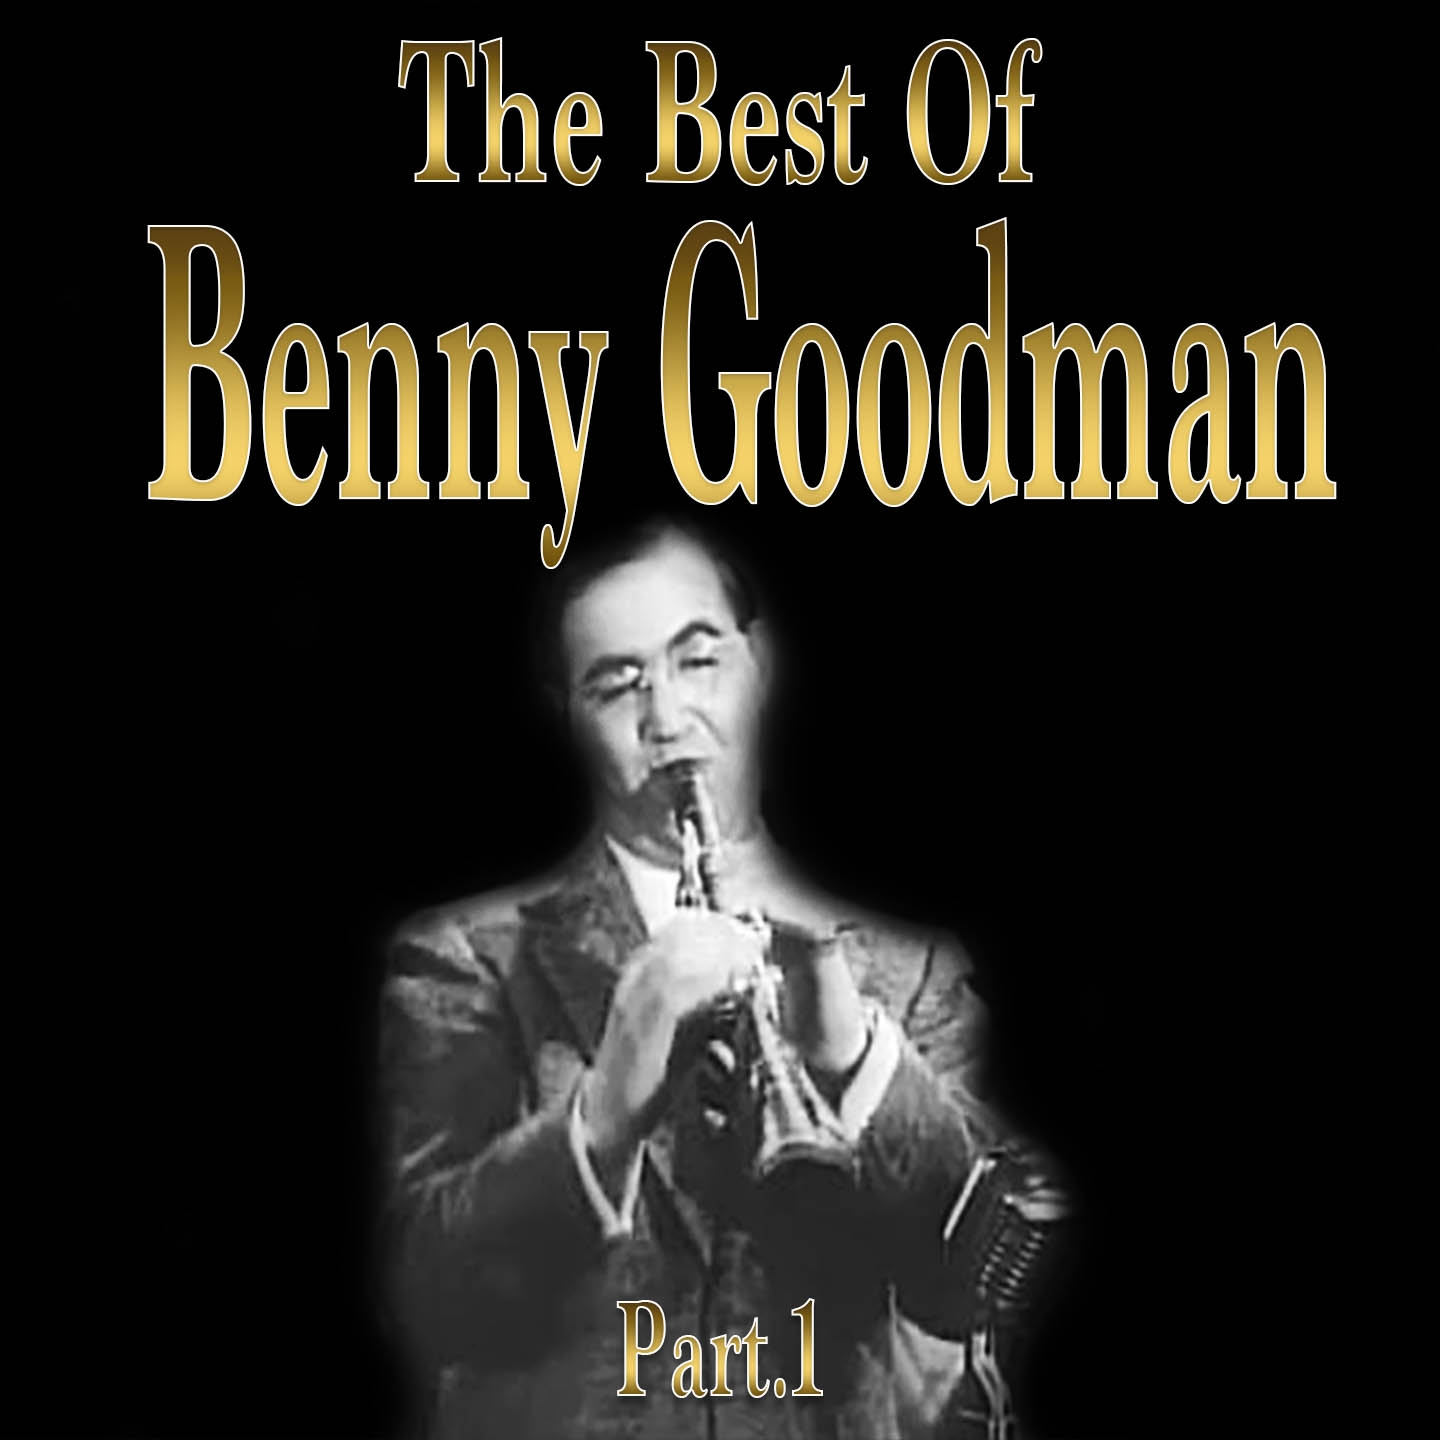 The Best Of Benny Goodman, Part 1 - Let's Dance, Want to Be Happy, And 23 Other Hits